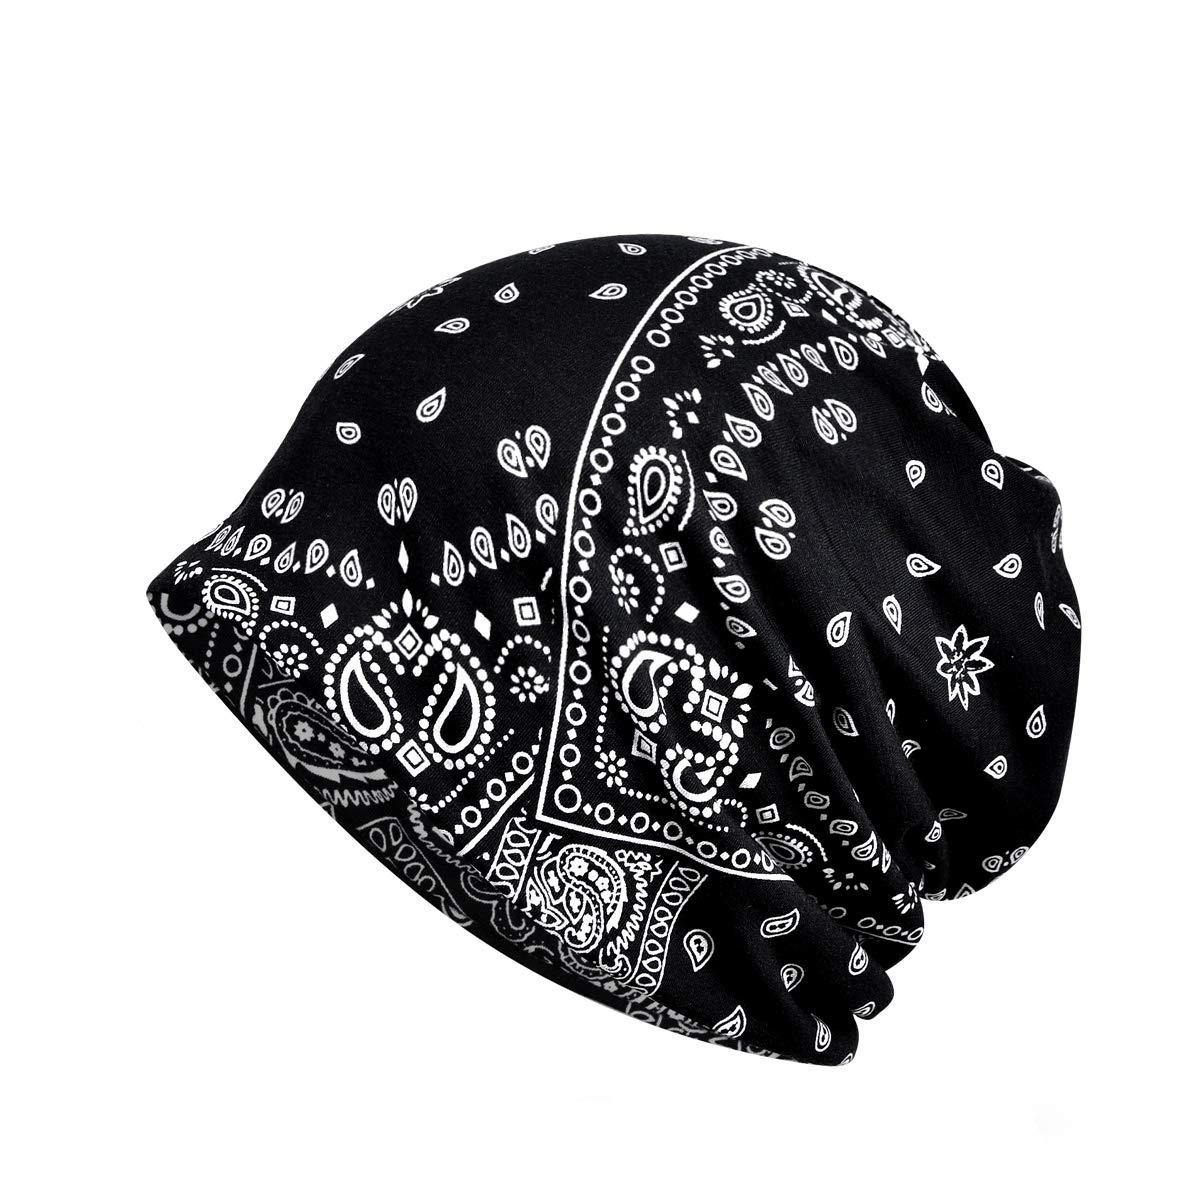 Cotton Fashion Beanies Chemo Caps Cancer Headwear Skull Cap Knitted hat Scarf for Womens Mens (MZ015-Black